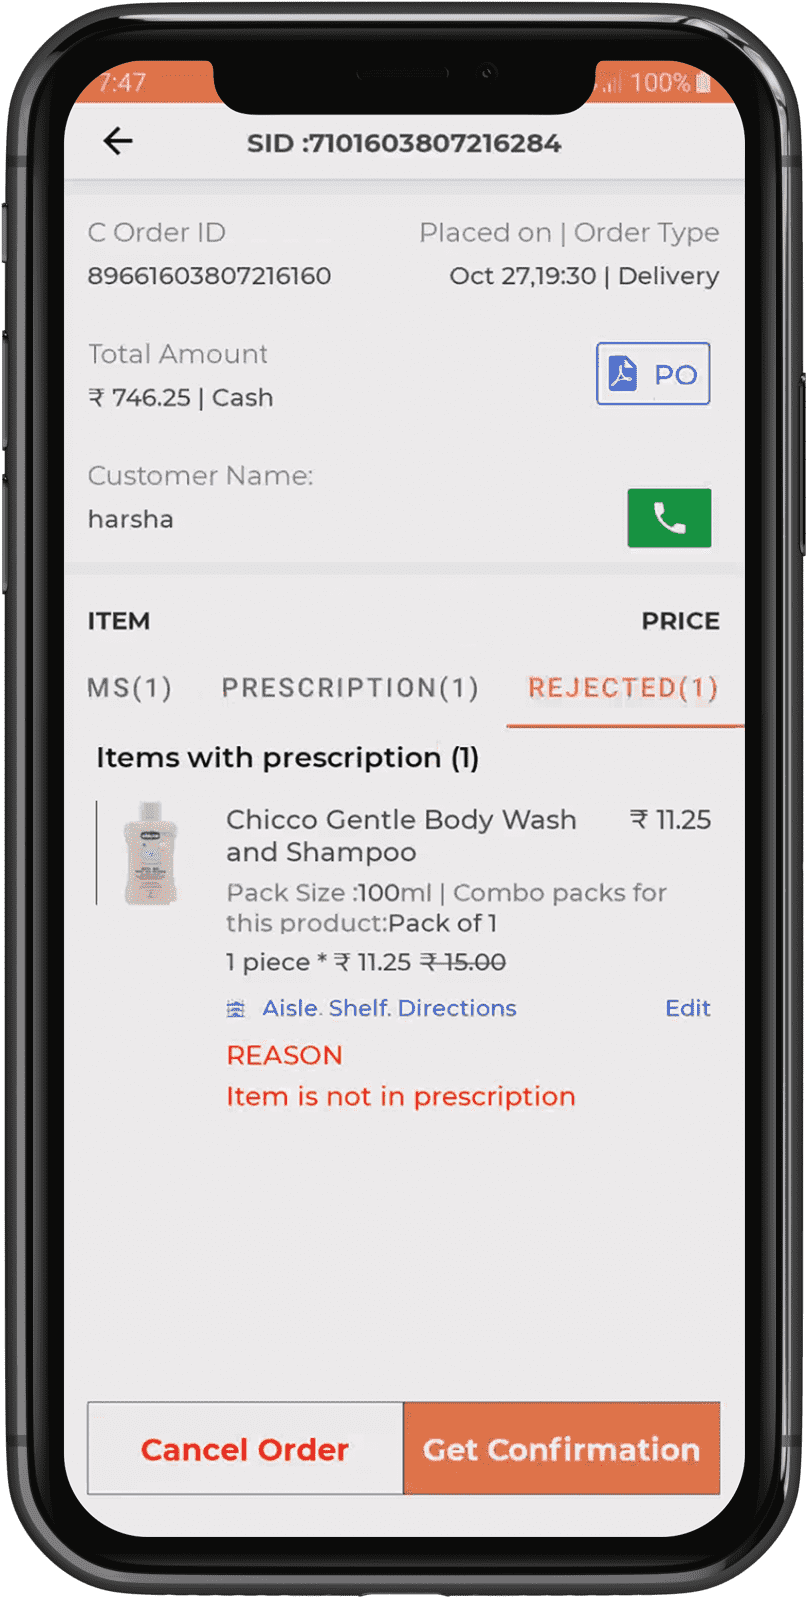 ask-for-customer-approval-before-dispatching-the-modified-order-in-medicine-delivery-picker-app.png